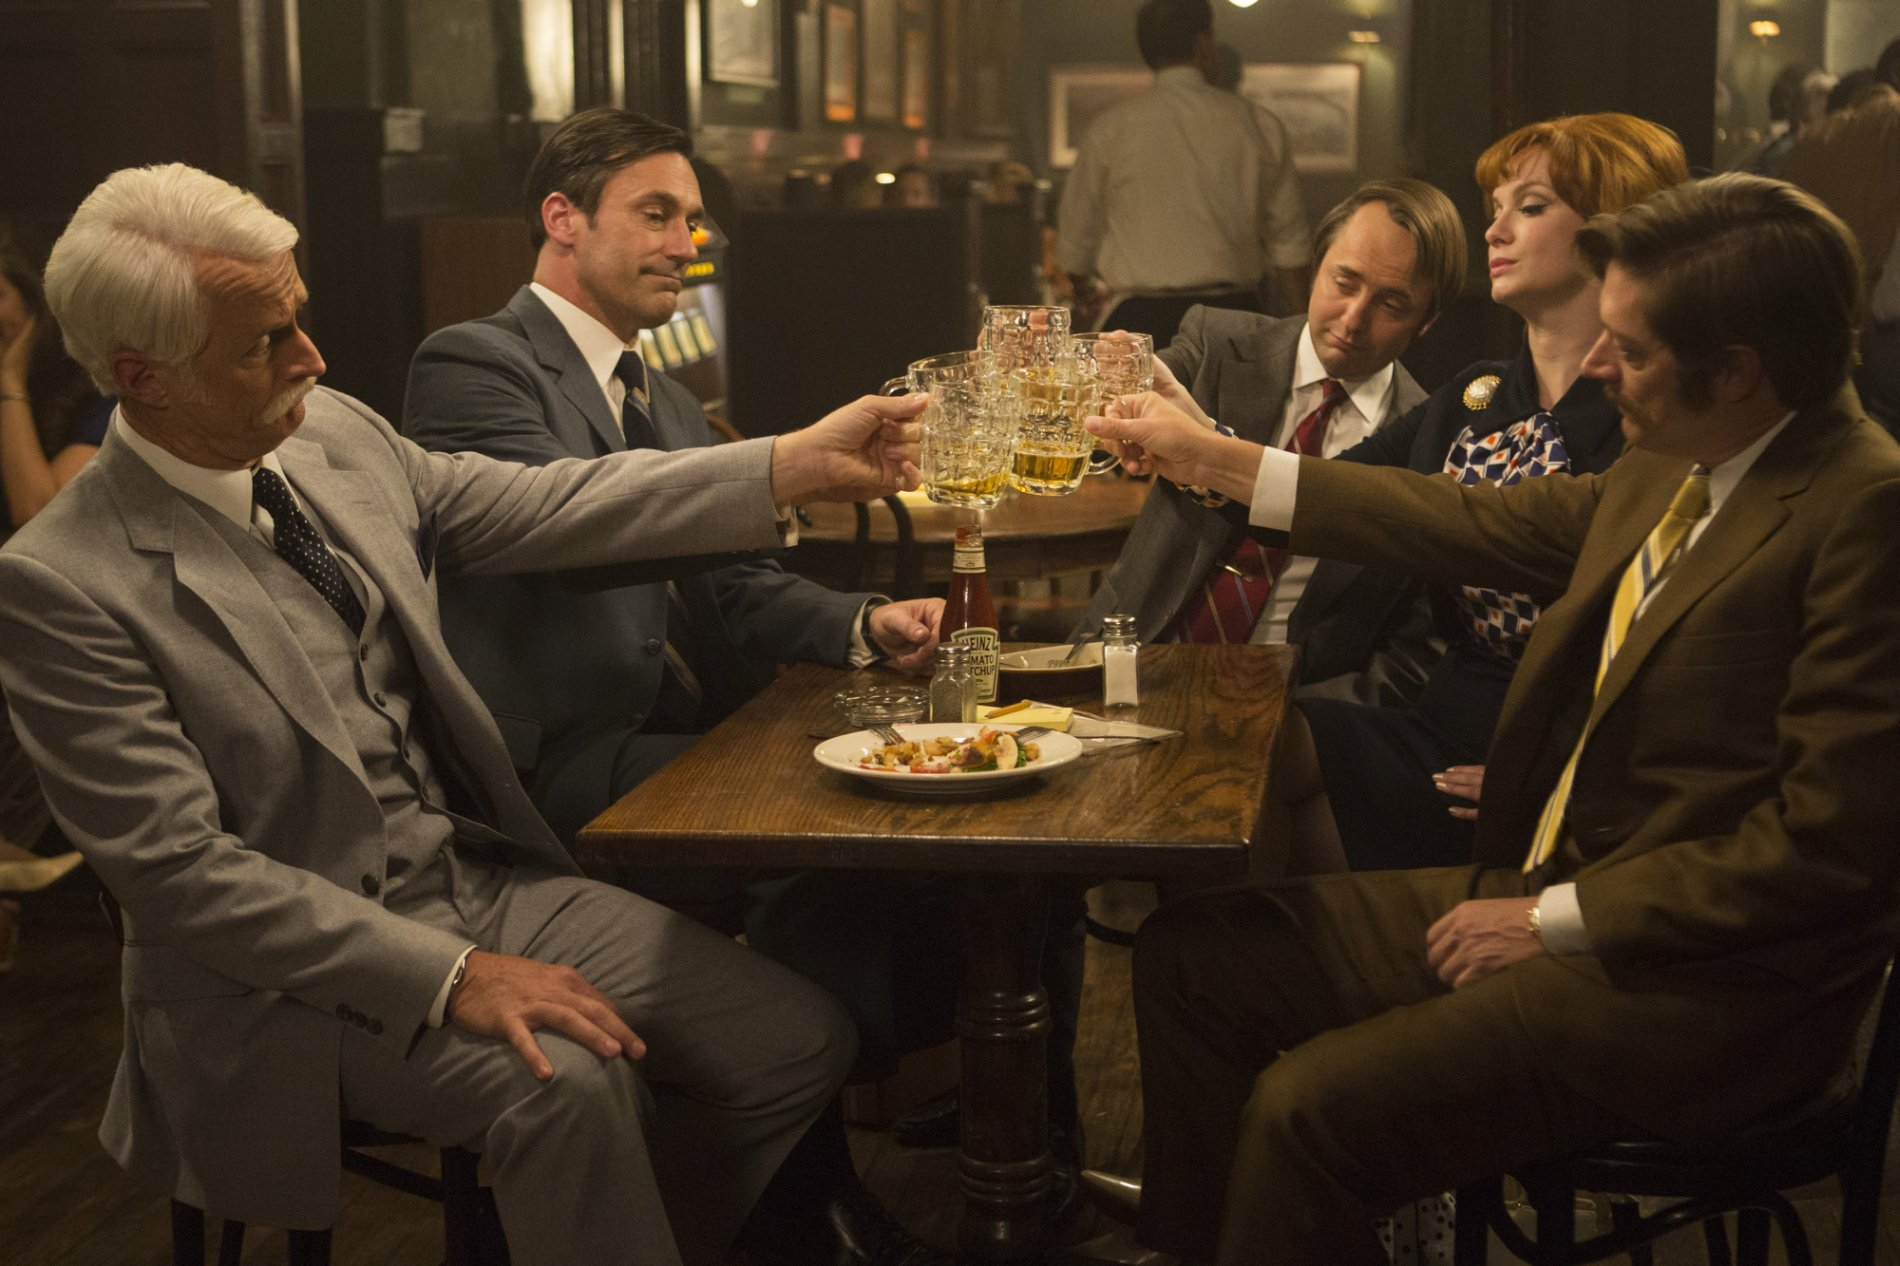 John Slattery as Roger Sterling, Jon Hamm as Don Draper, Vincent Kartheiser as Pete Campbell, Christina Hendricks as Joan Harris and Kevin Rahm as Ted Chaough - Mad Men _ Season 7B, Episode 11 - Photo Credit: Justin Mintz/AMC